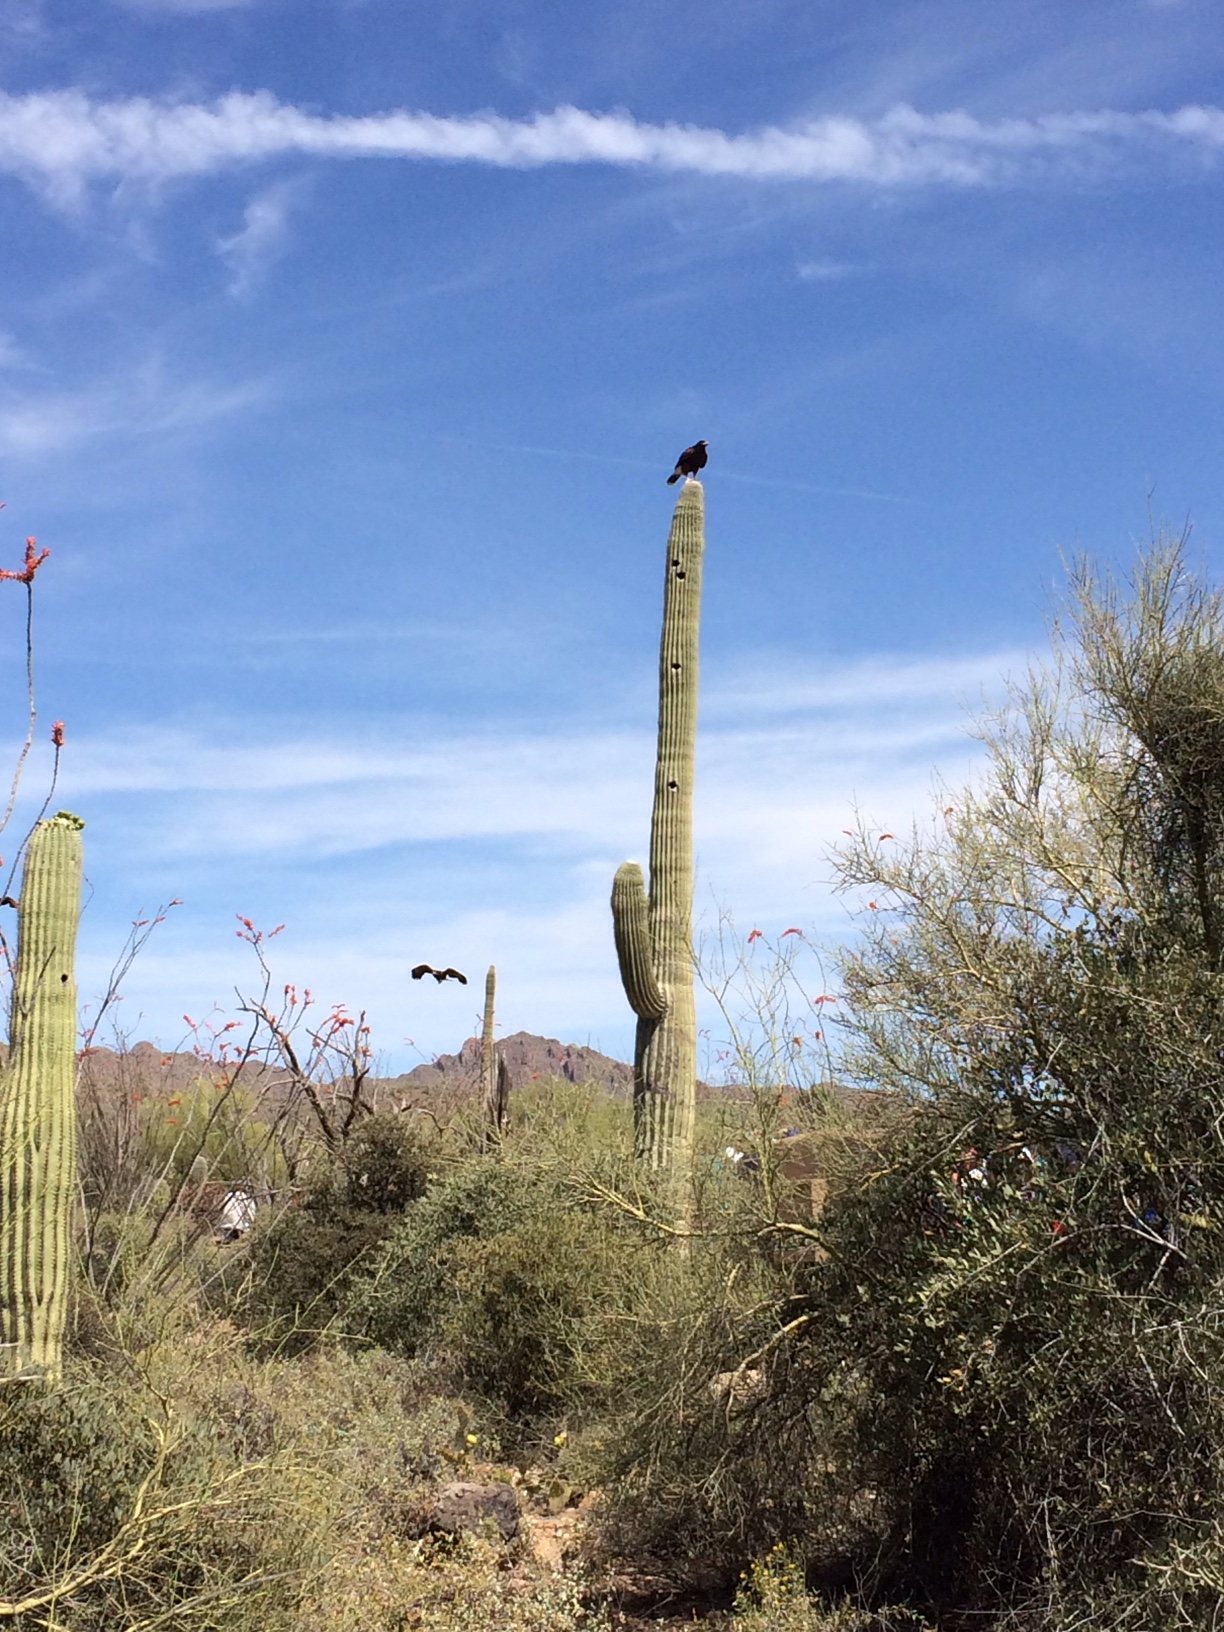 Falcons on cacti